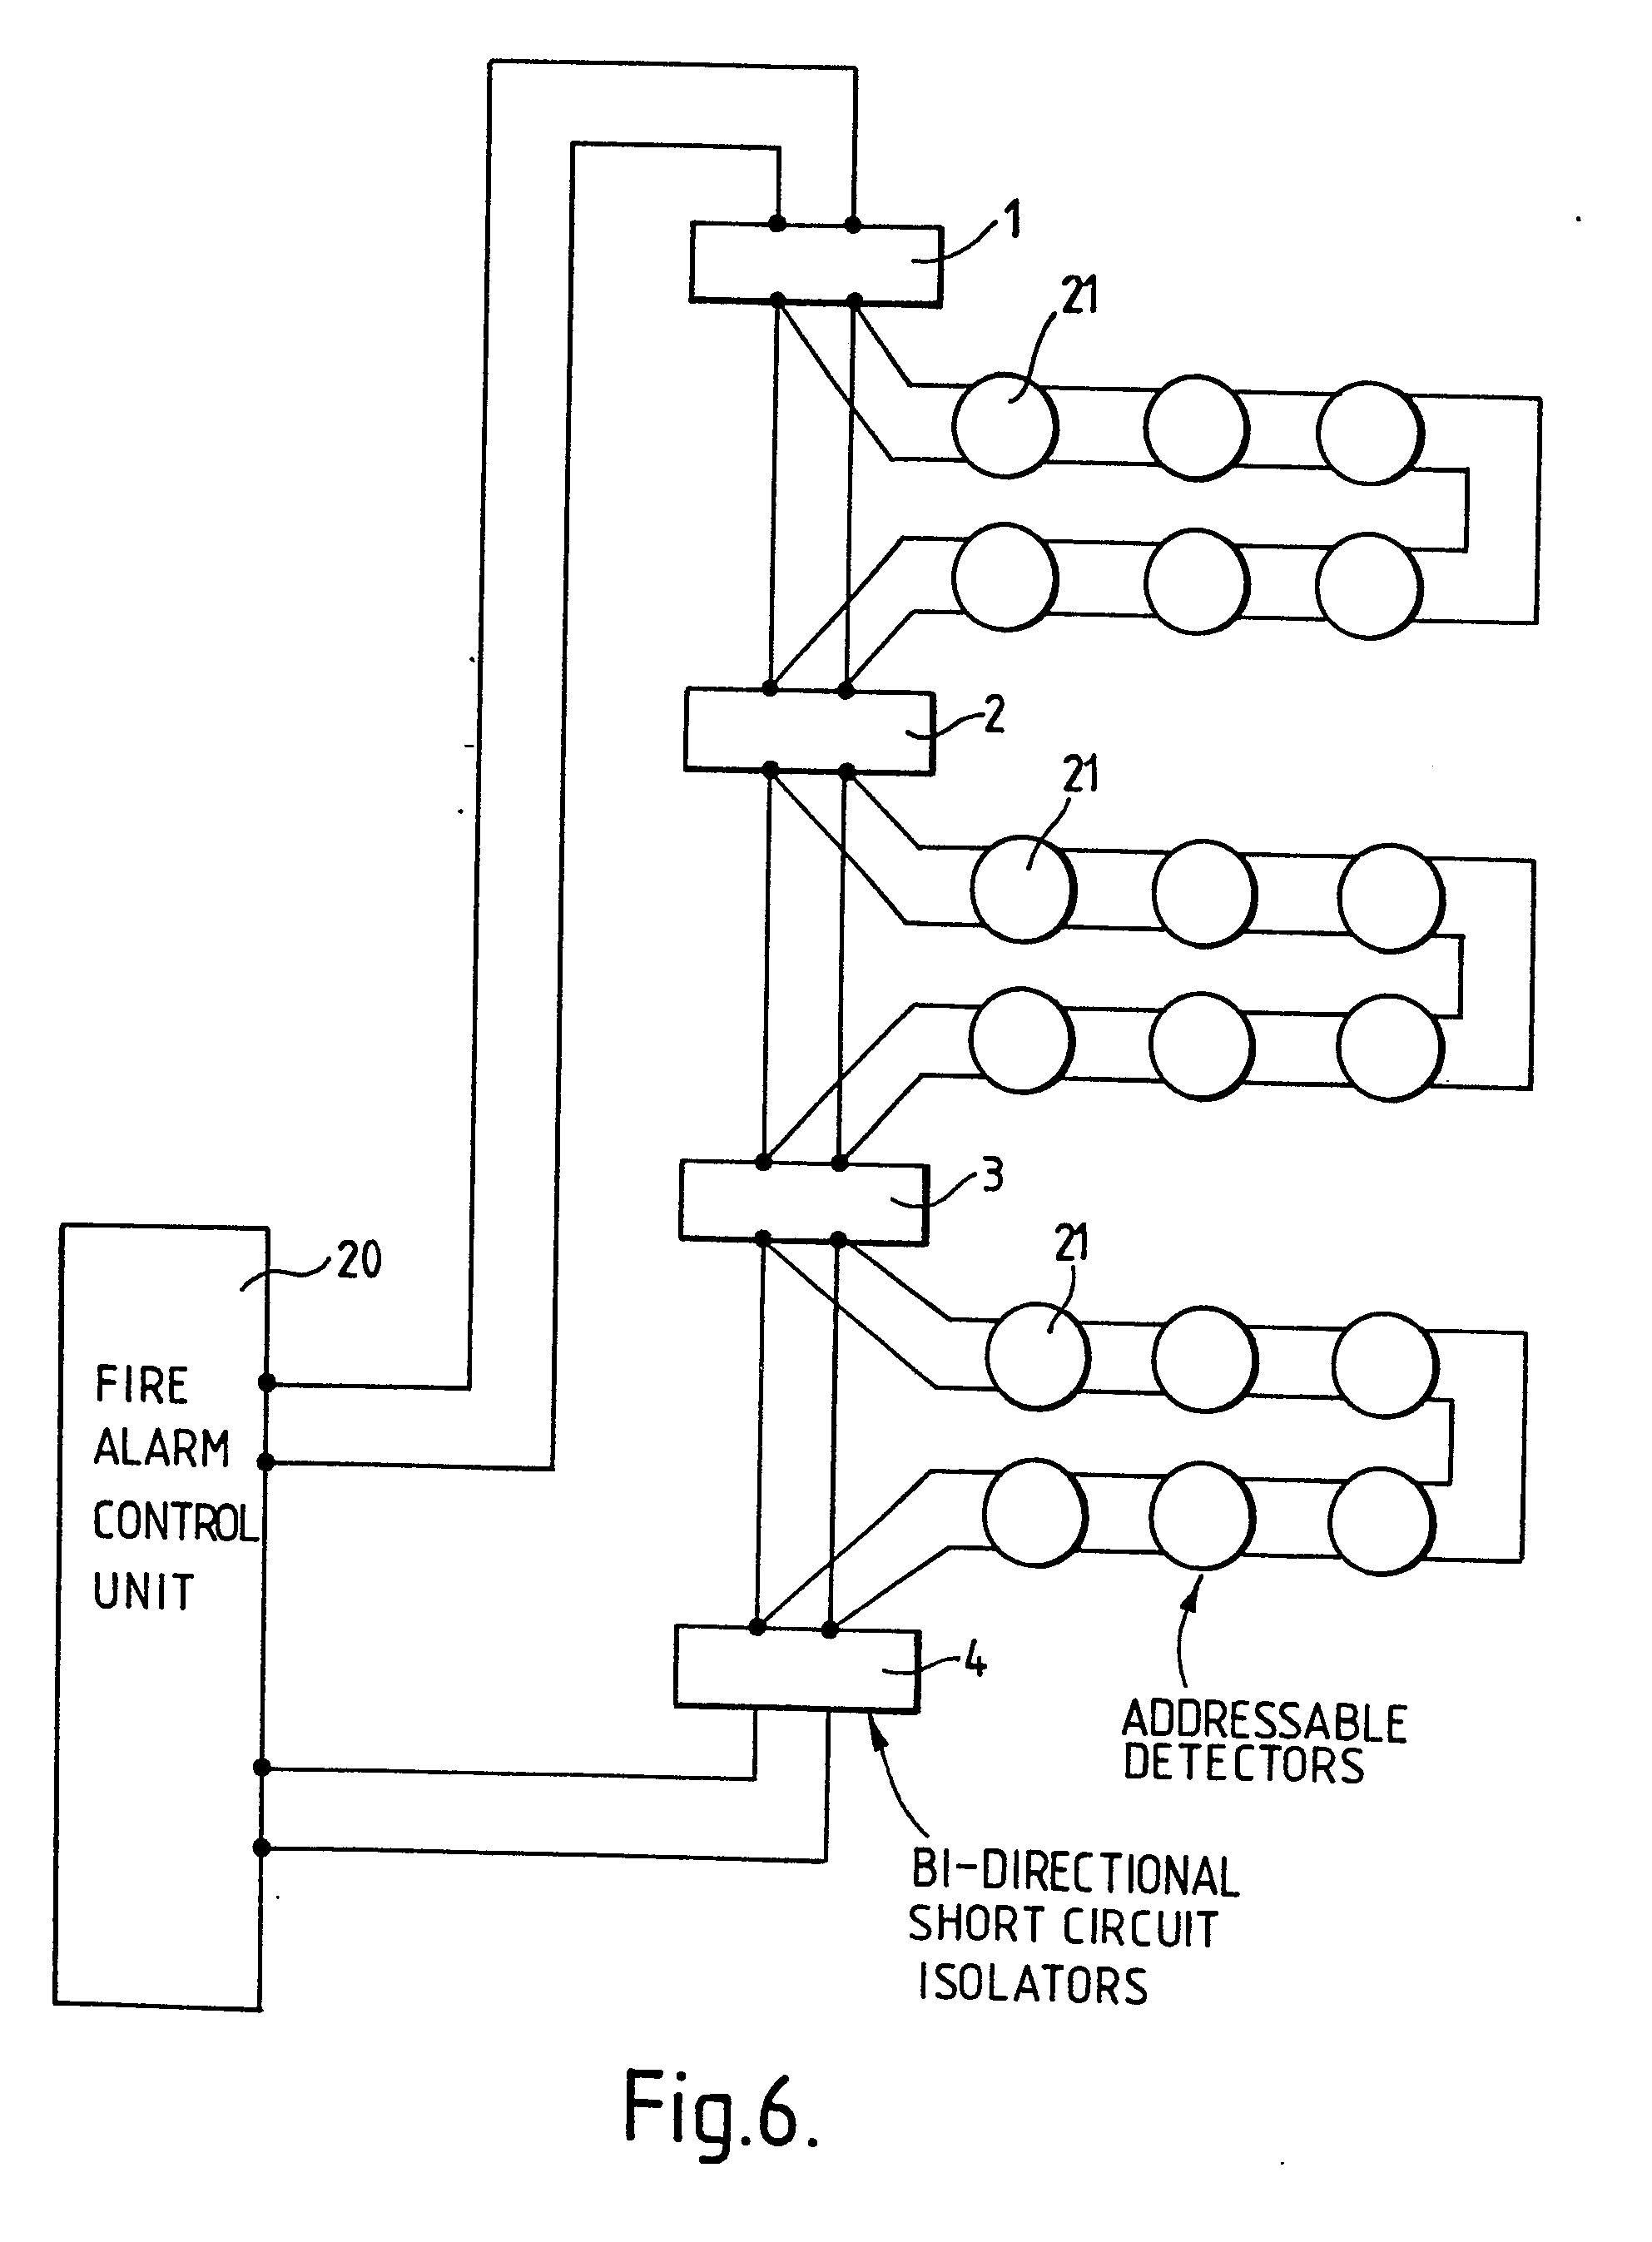 imgf0005 addressable fire alarm circuit diagram circuit and schematics fire alarm wiring schematic at creativeand.co